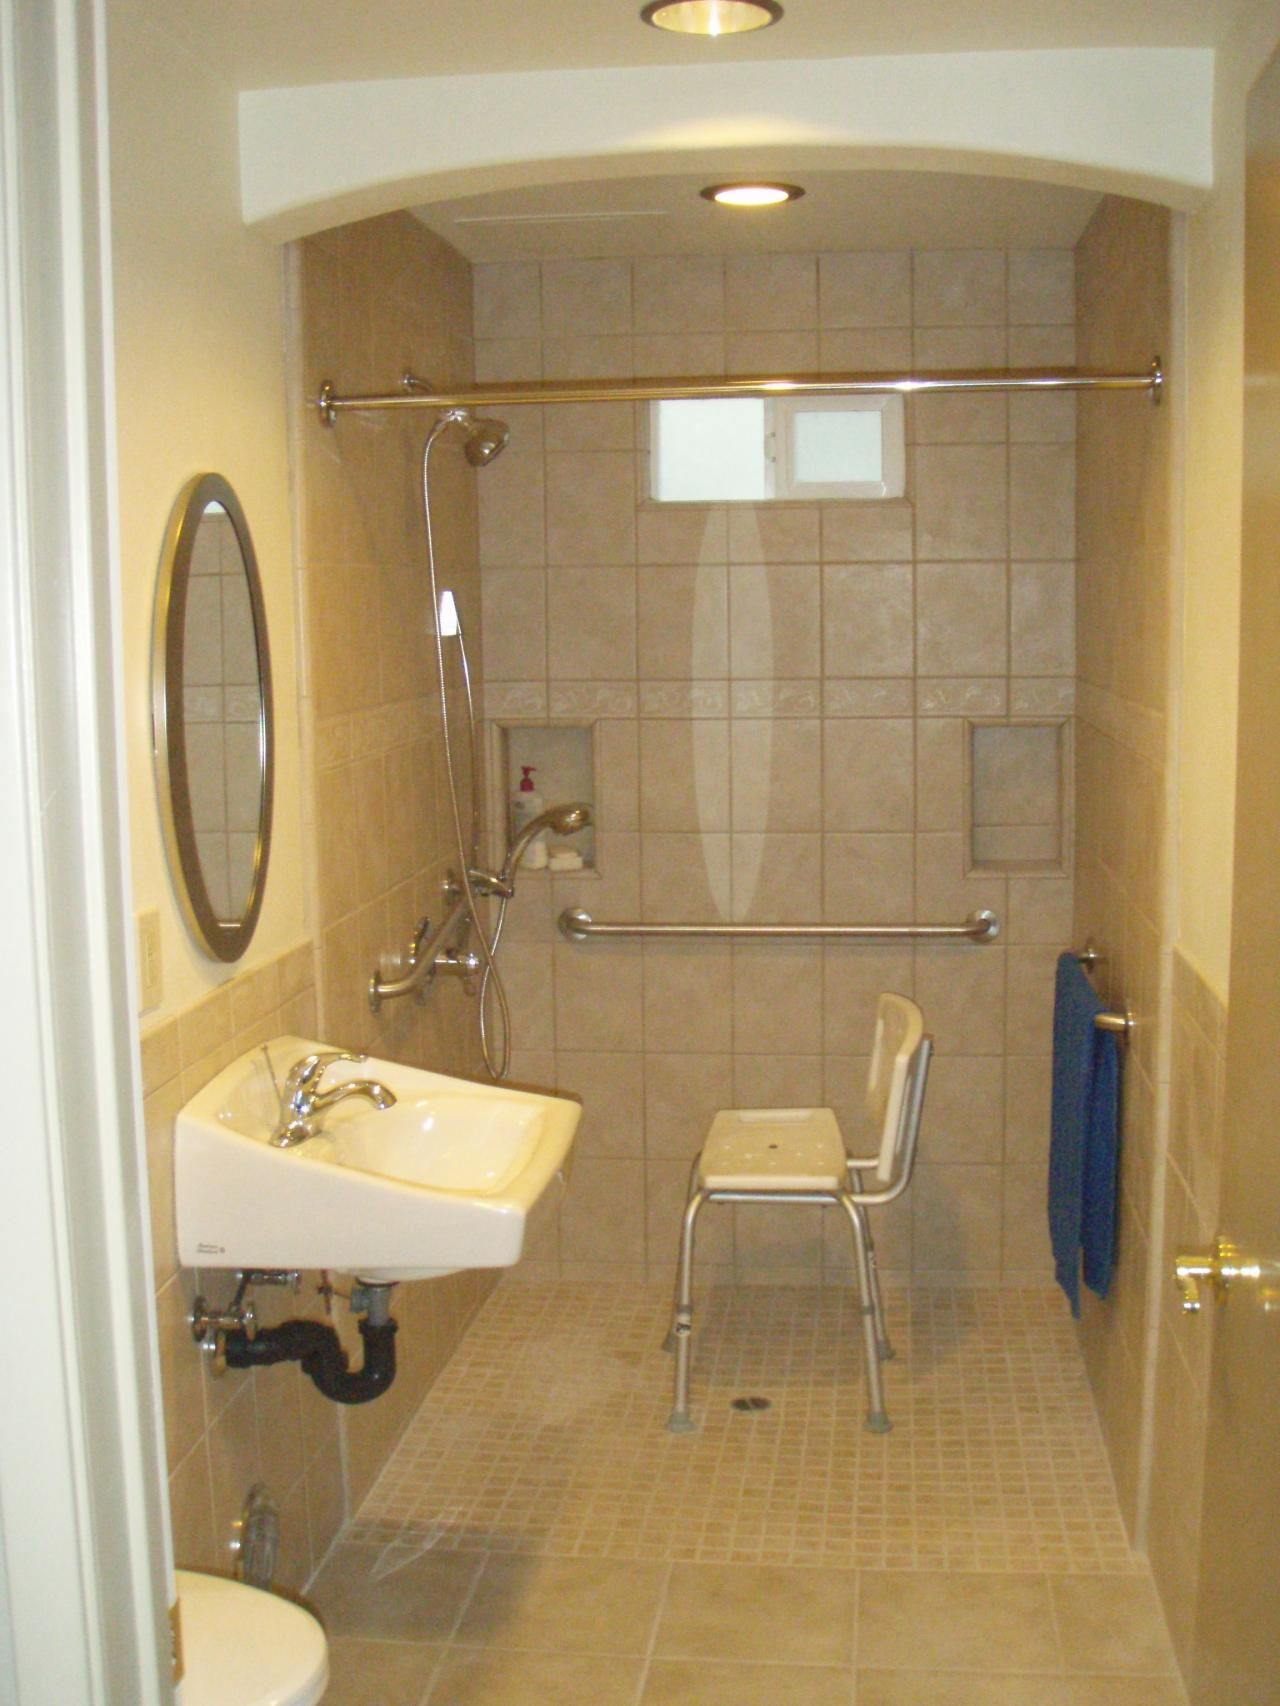 create c to accessible and design disability an how pressalit bathroom creating independence handicap